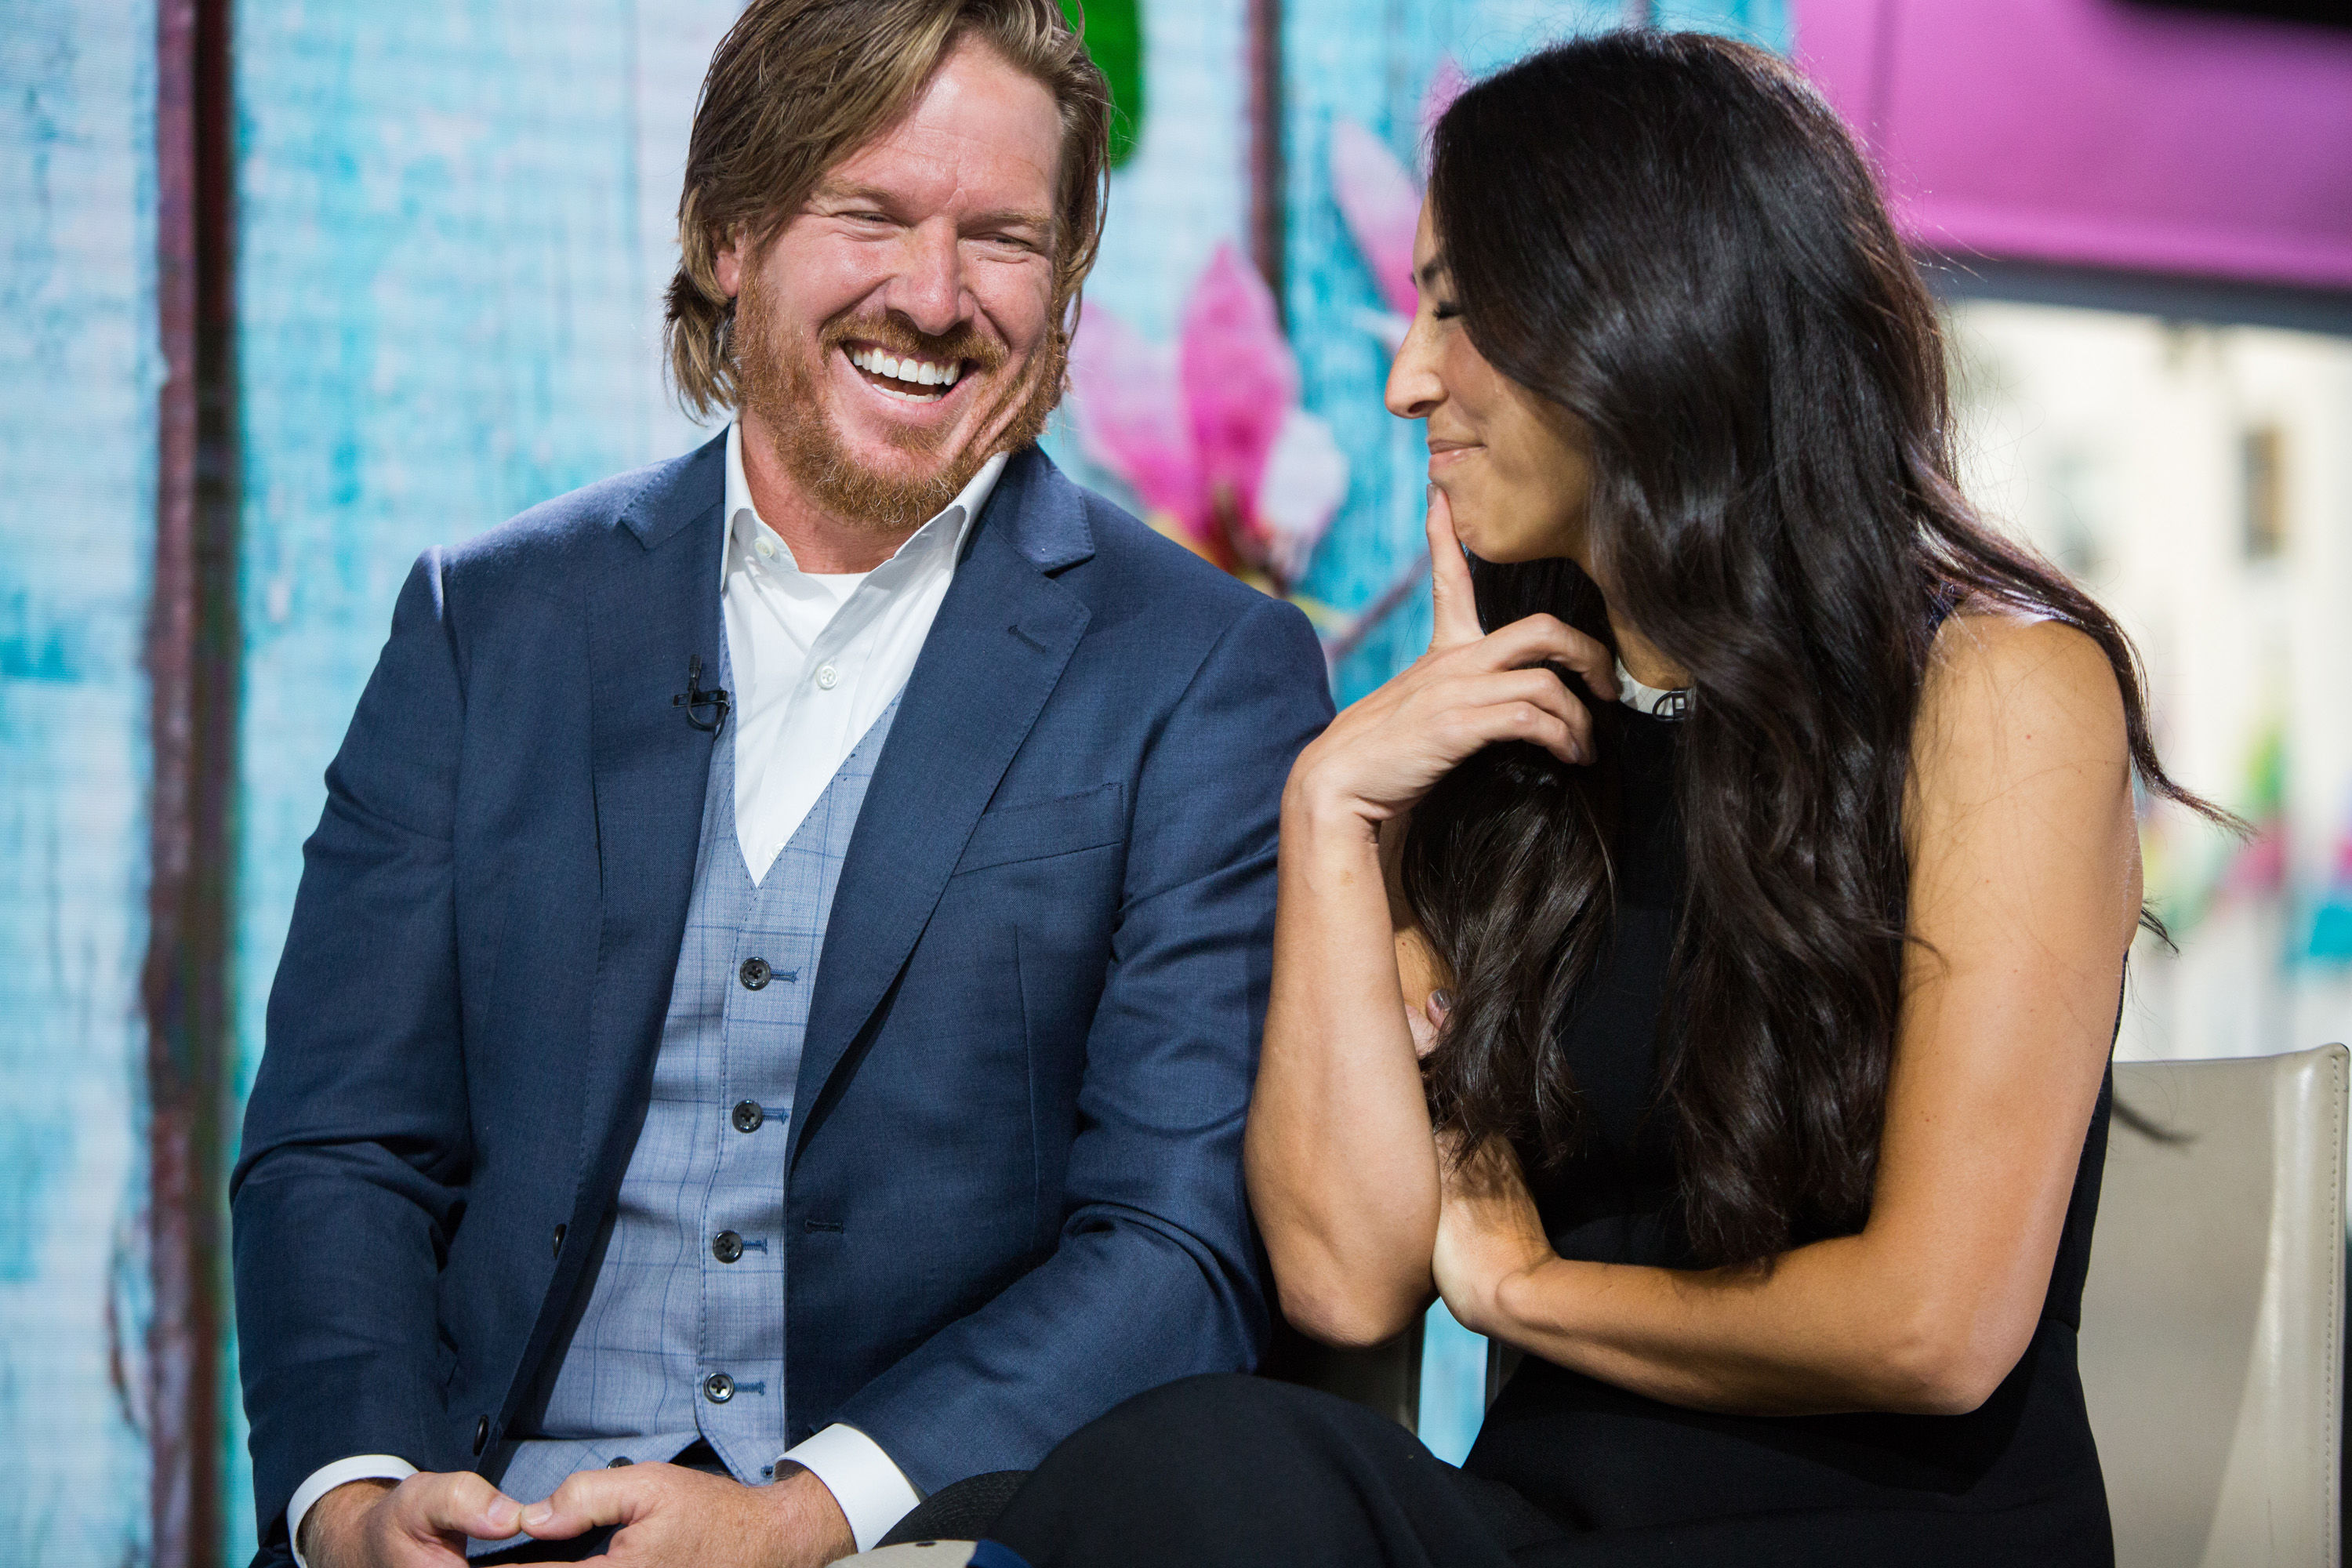 Find Out The Secret Ingredient to Chip and Joanna Gaines' Too-Cute Marriage